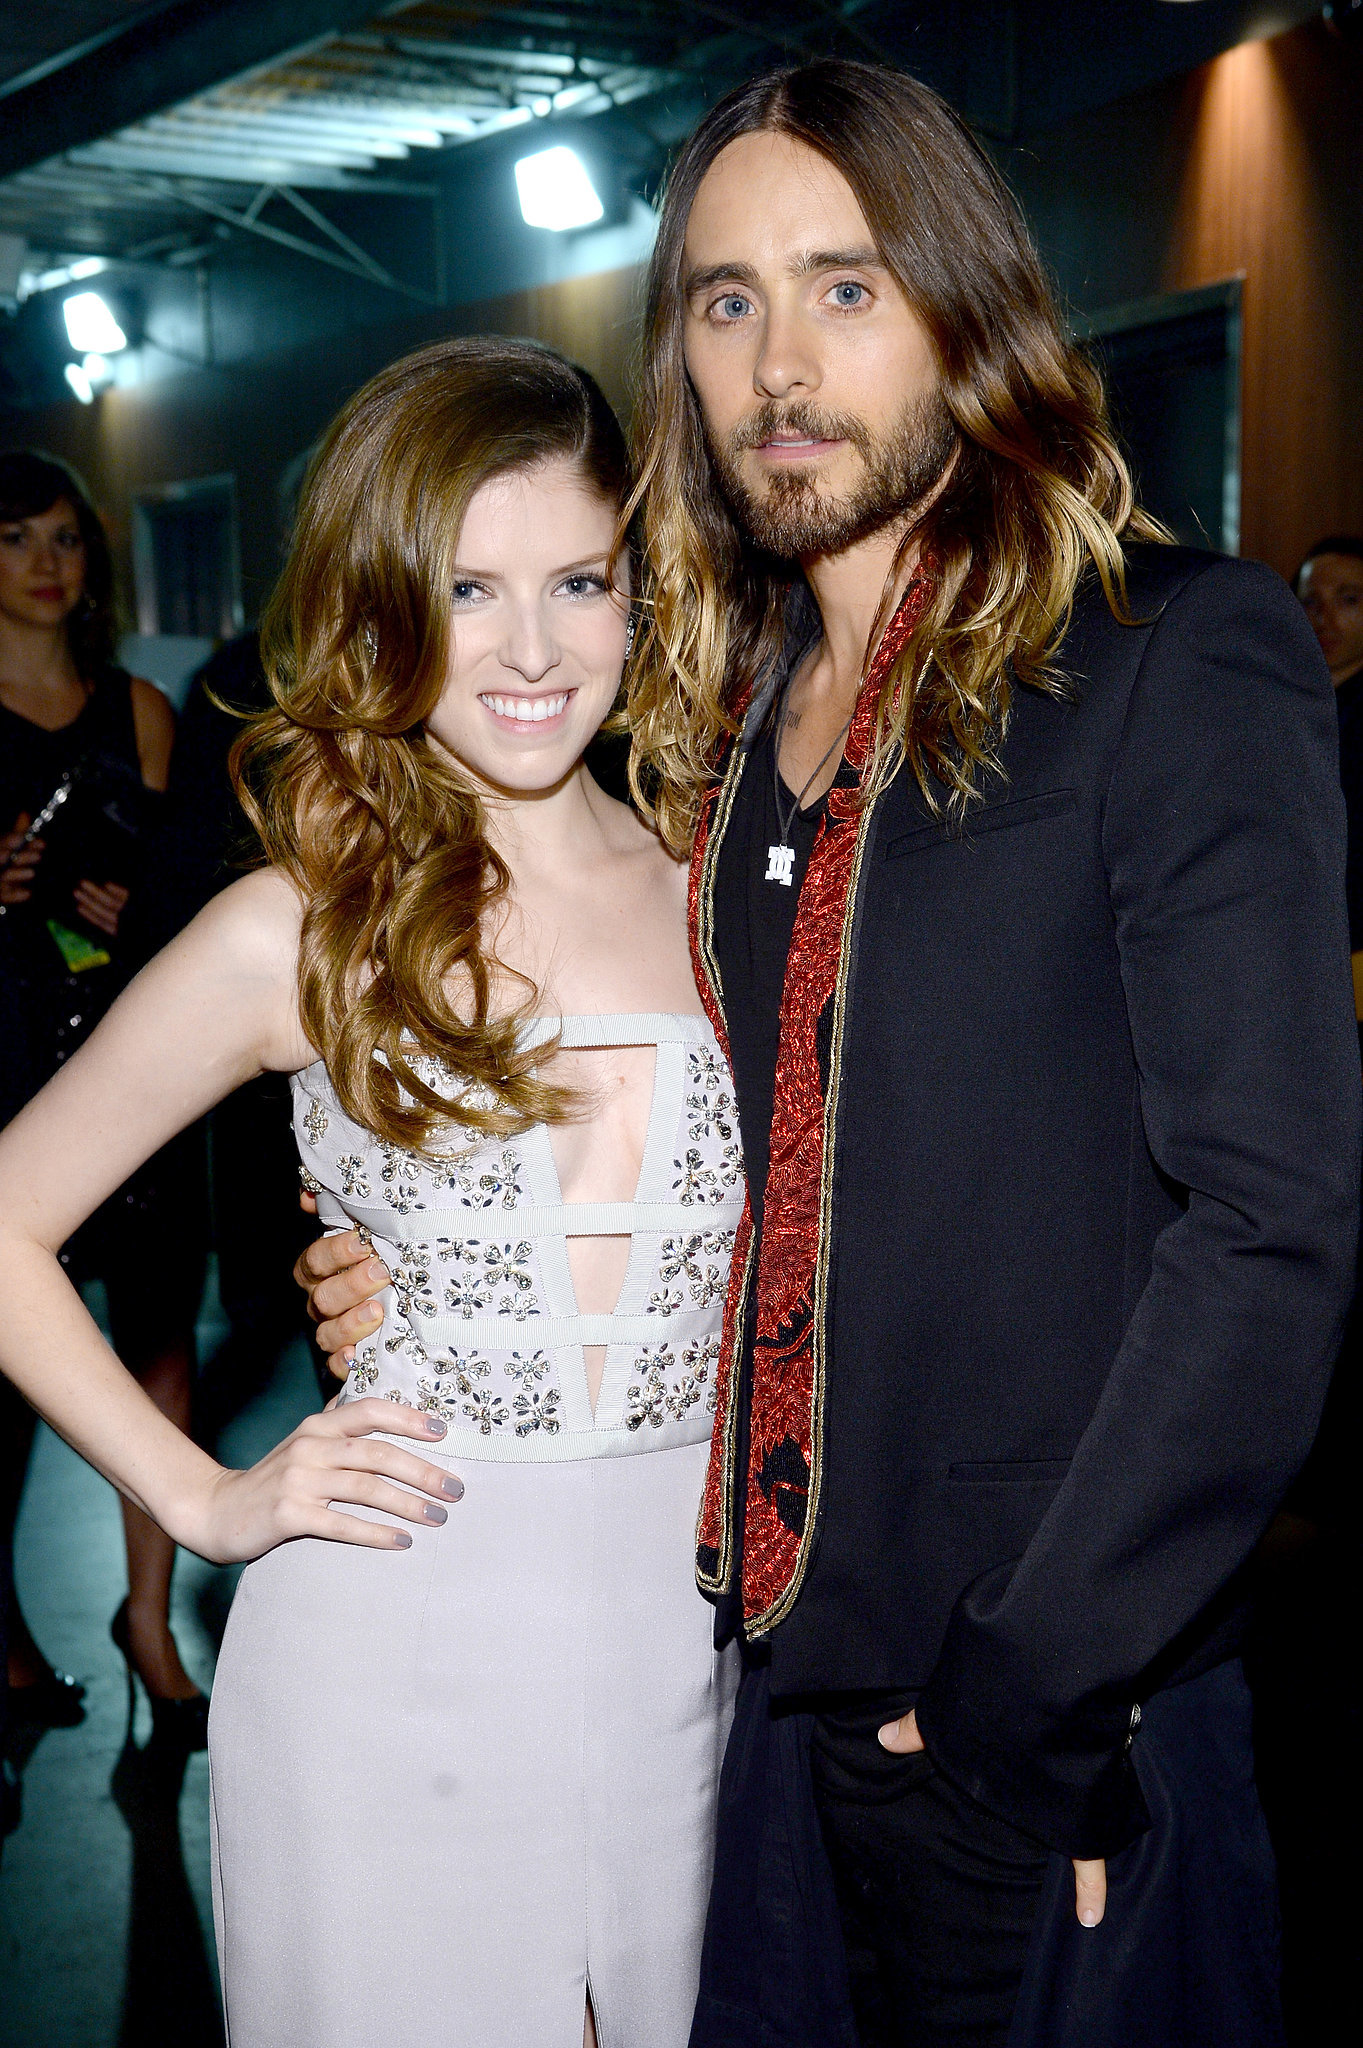 He met up with Anna Kendrick backstage at the Grammys.